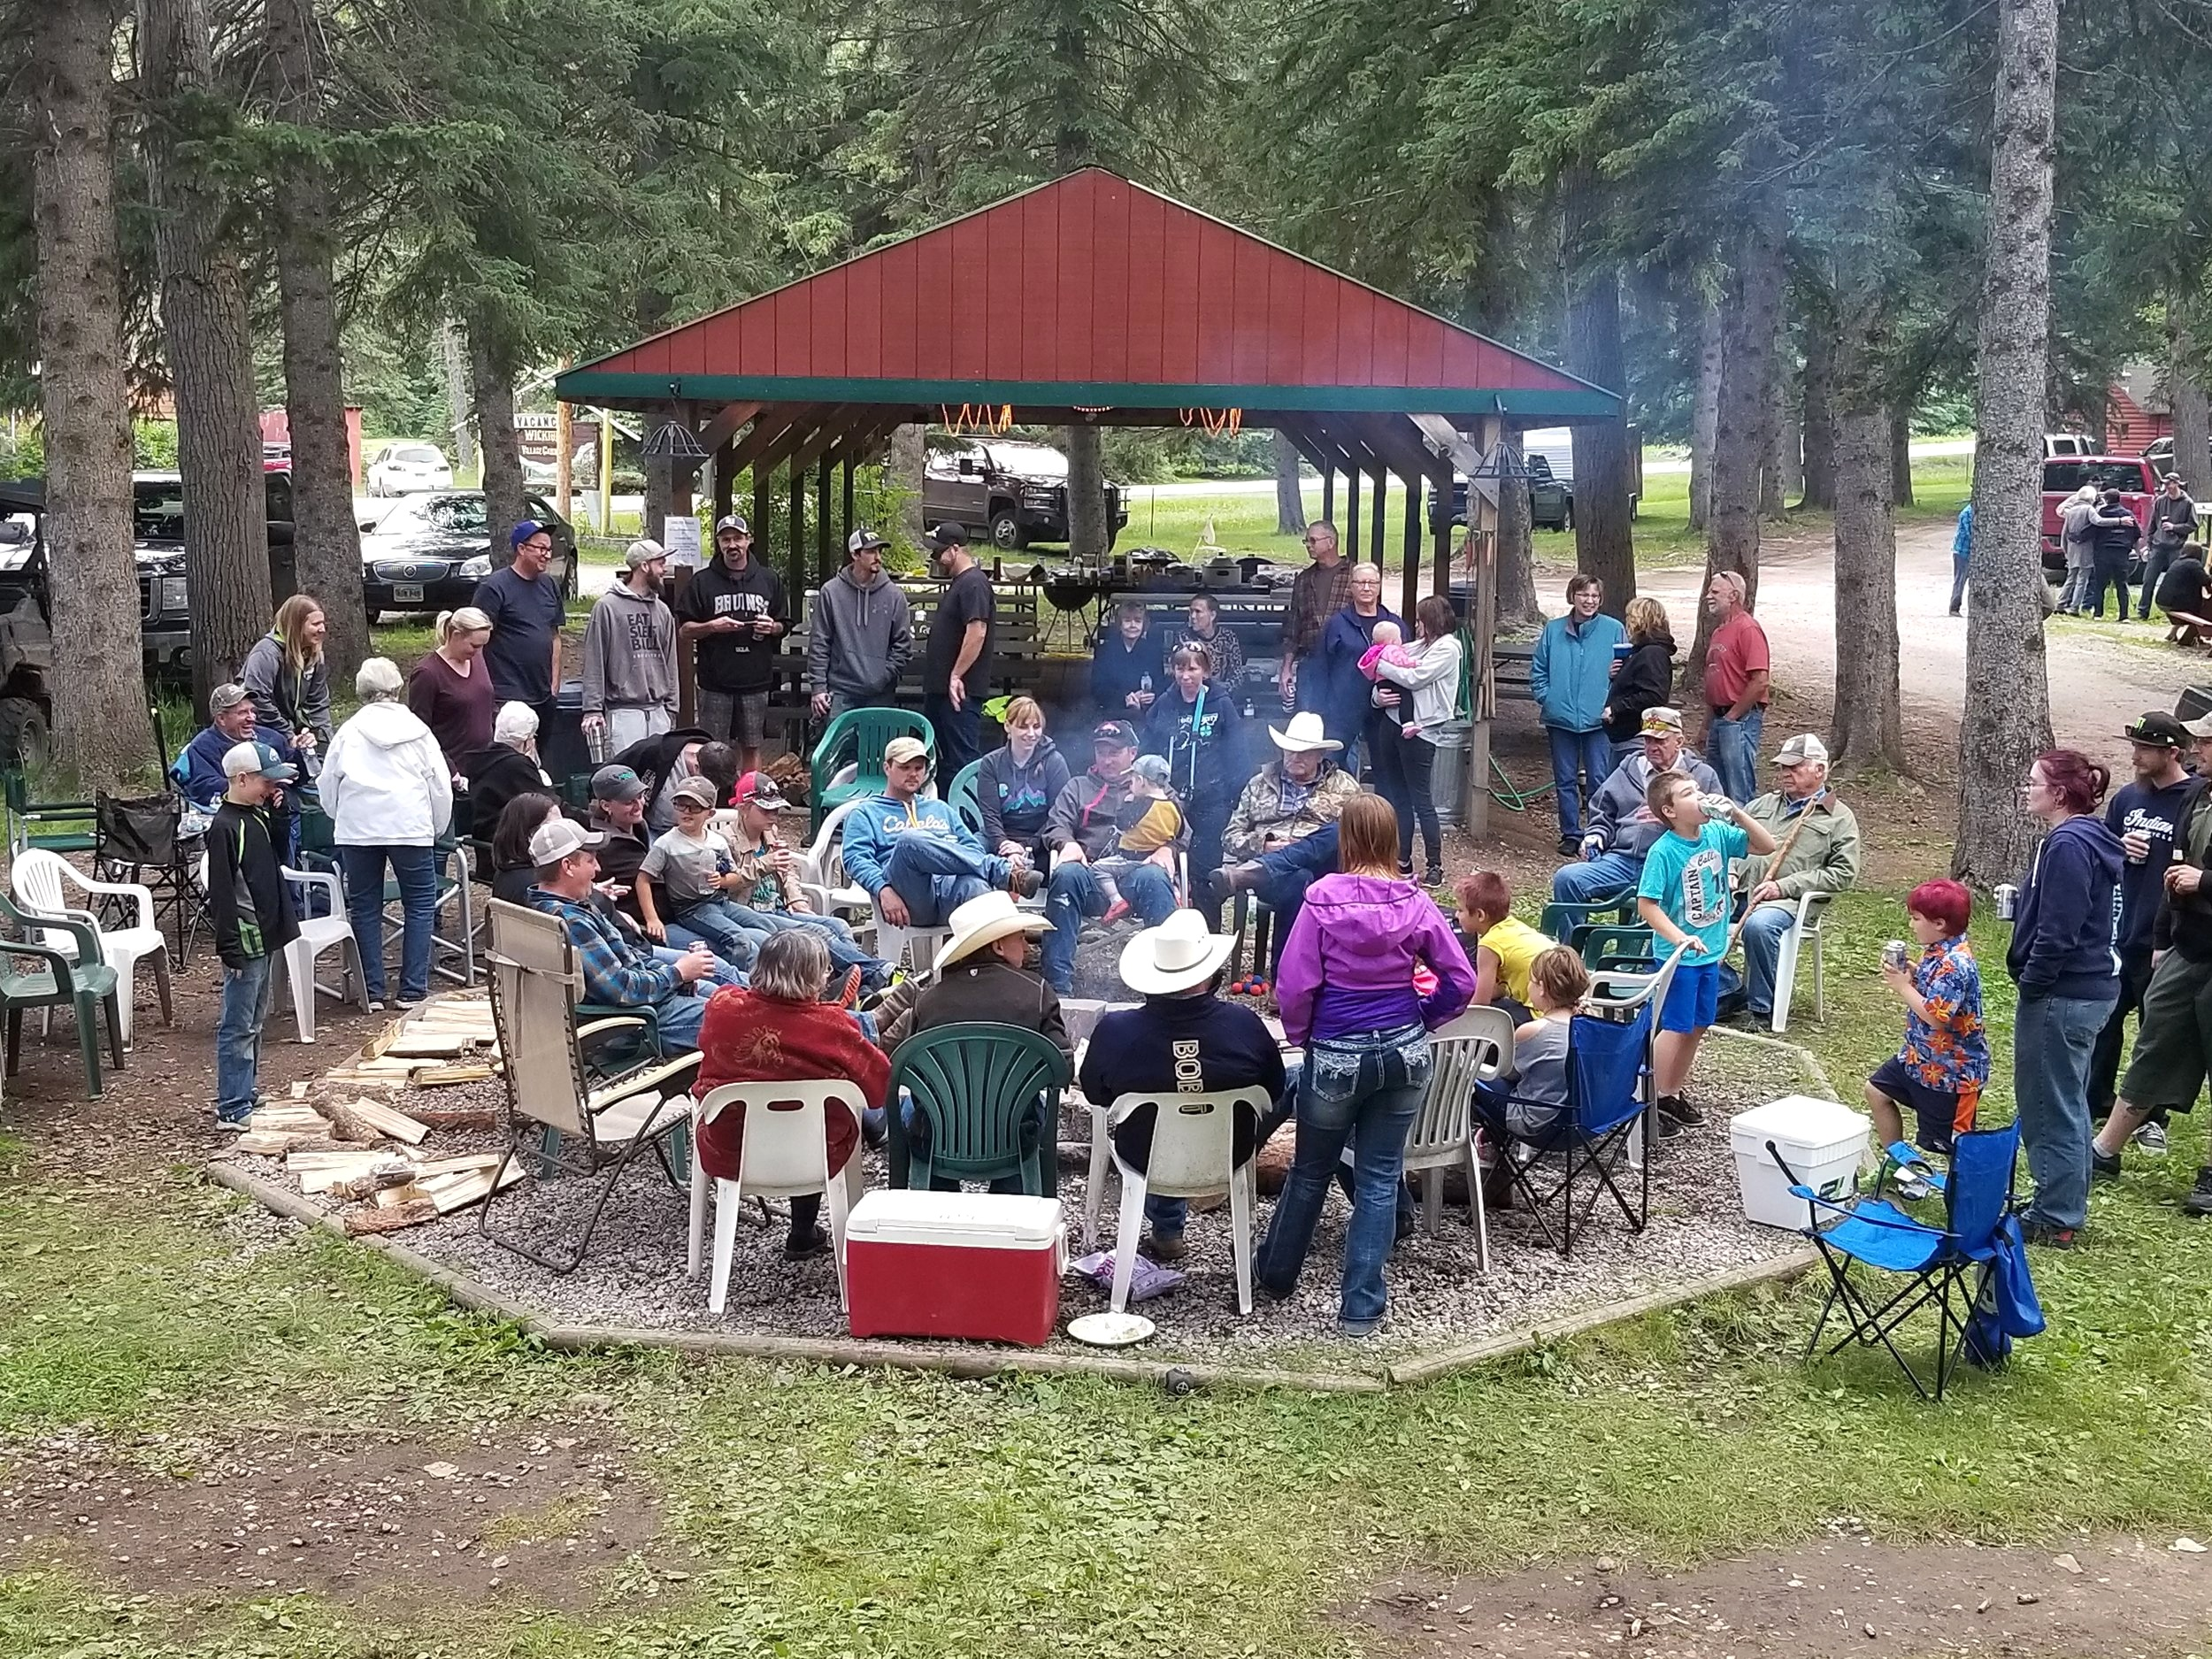 Our campfire and picnic shelter is a perfect place to host family reunions/ weddings or parties. With 20 cabins to rent your whole family will be in one spot for your get together.